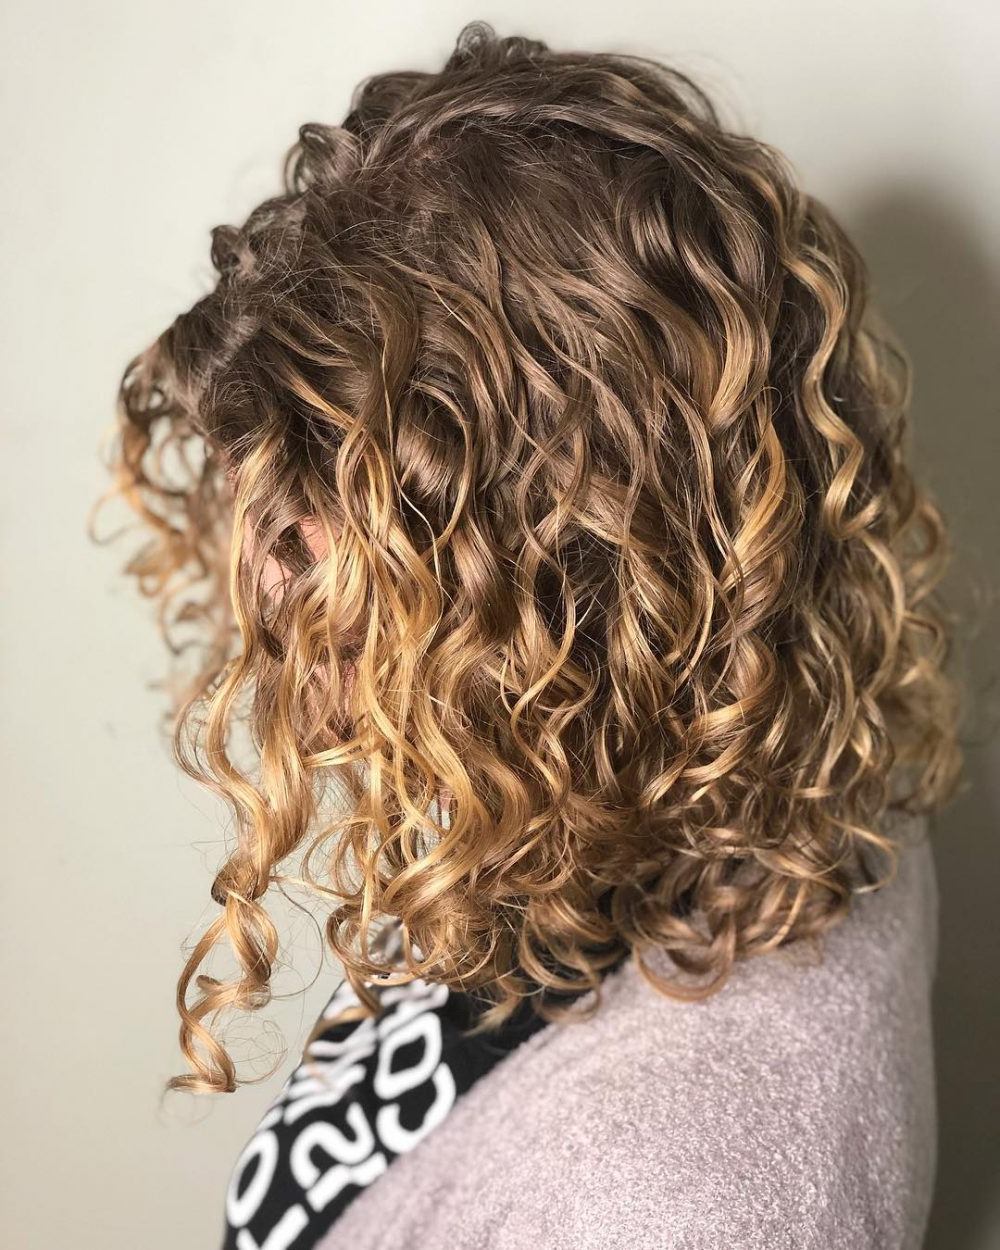 Most Current Curly Medium Hairstyles Inside 30 Gorgeous Medium Length Curly Hairstyles For Women In  (View 12 of 20)